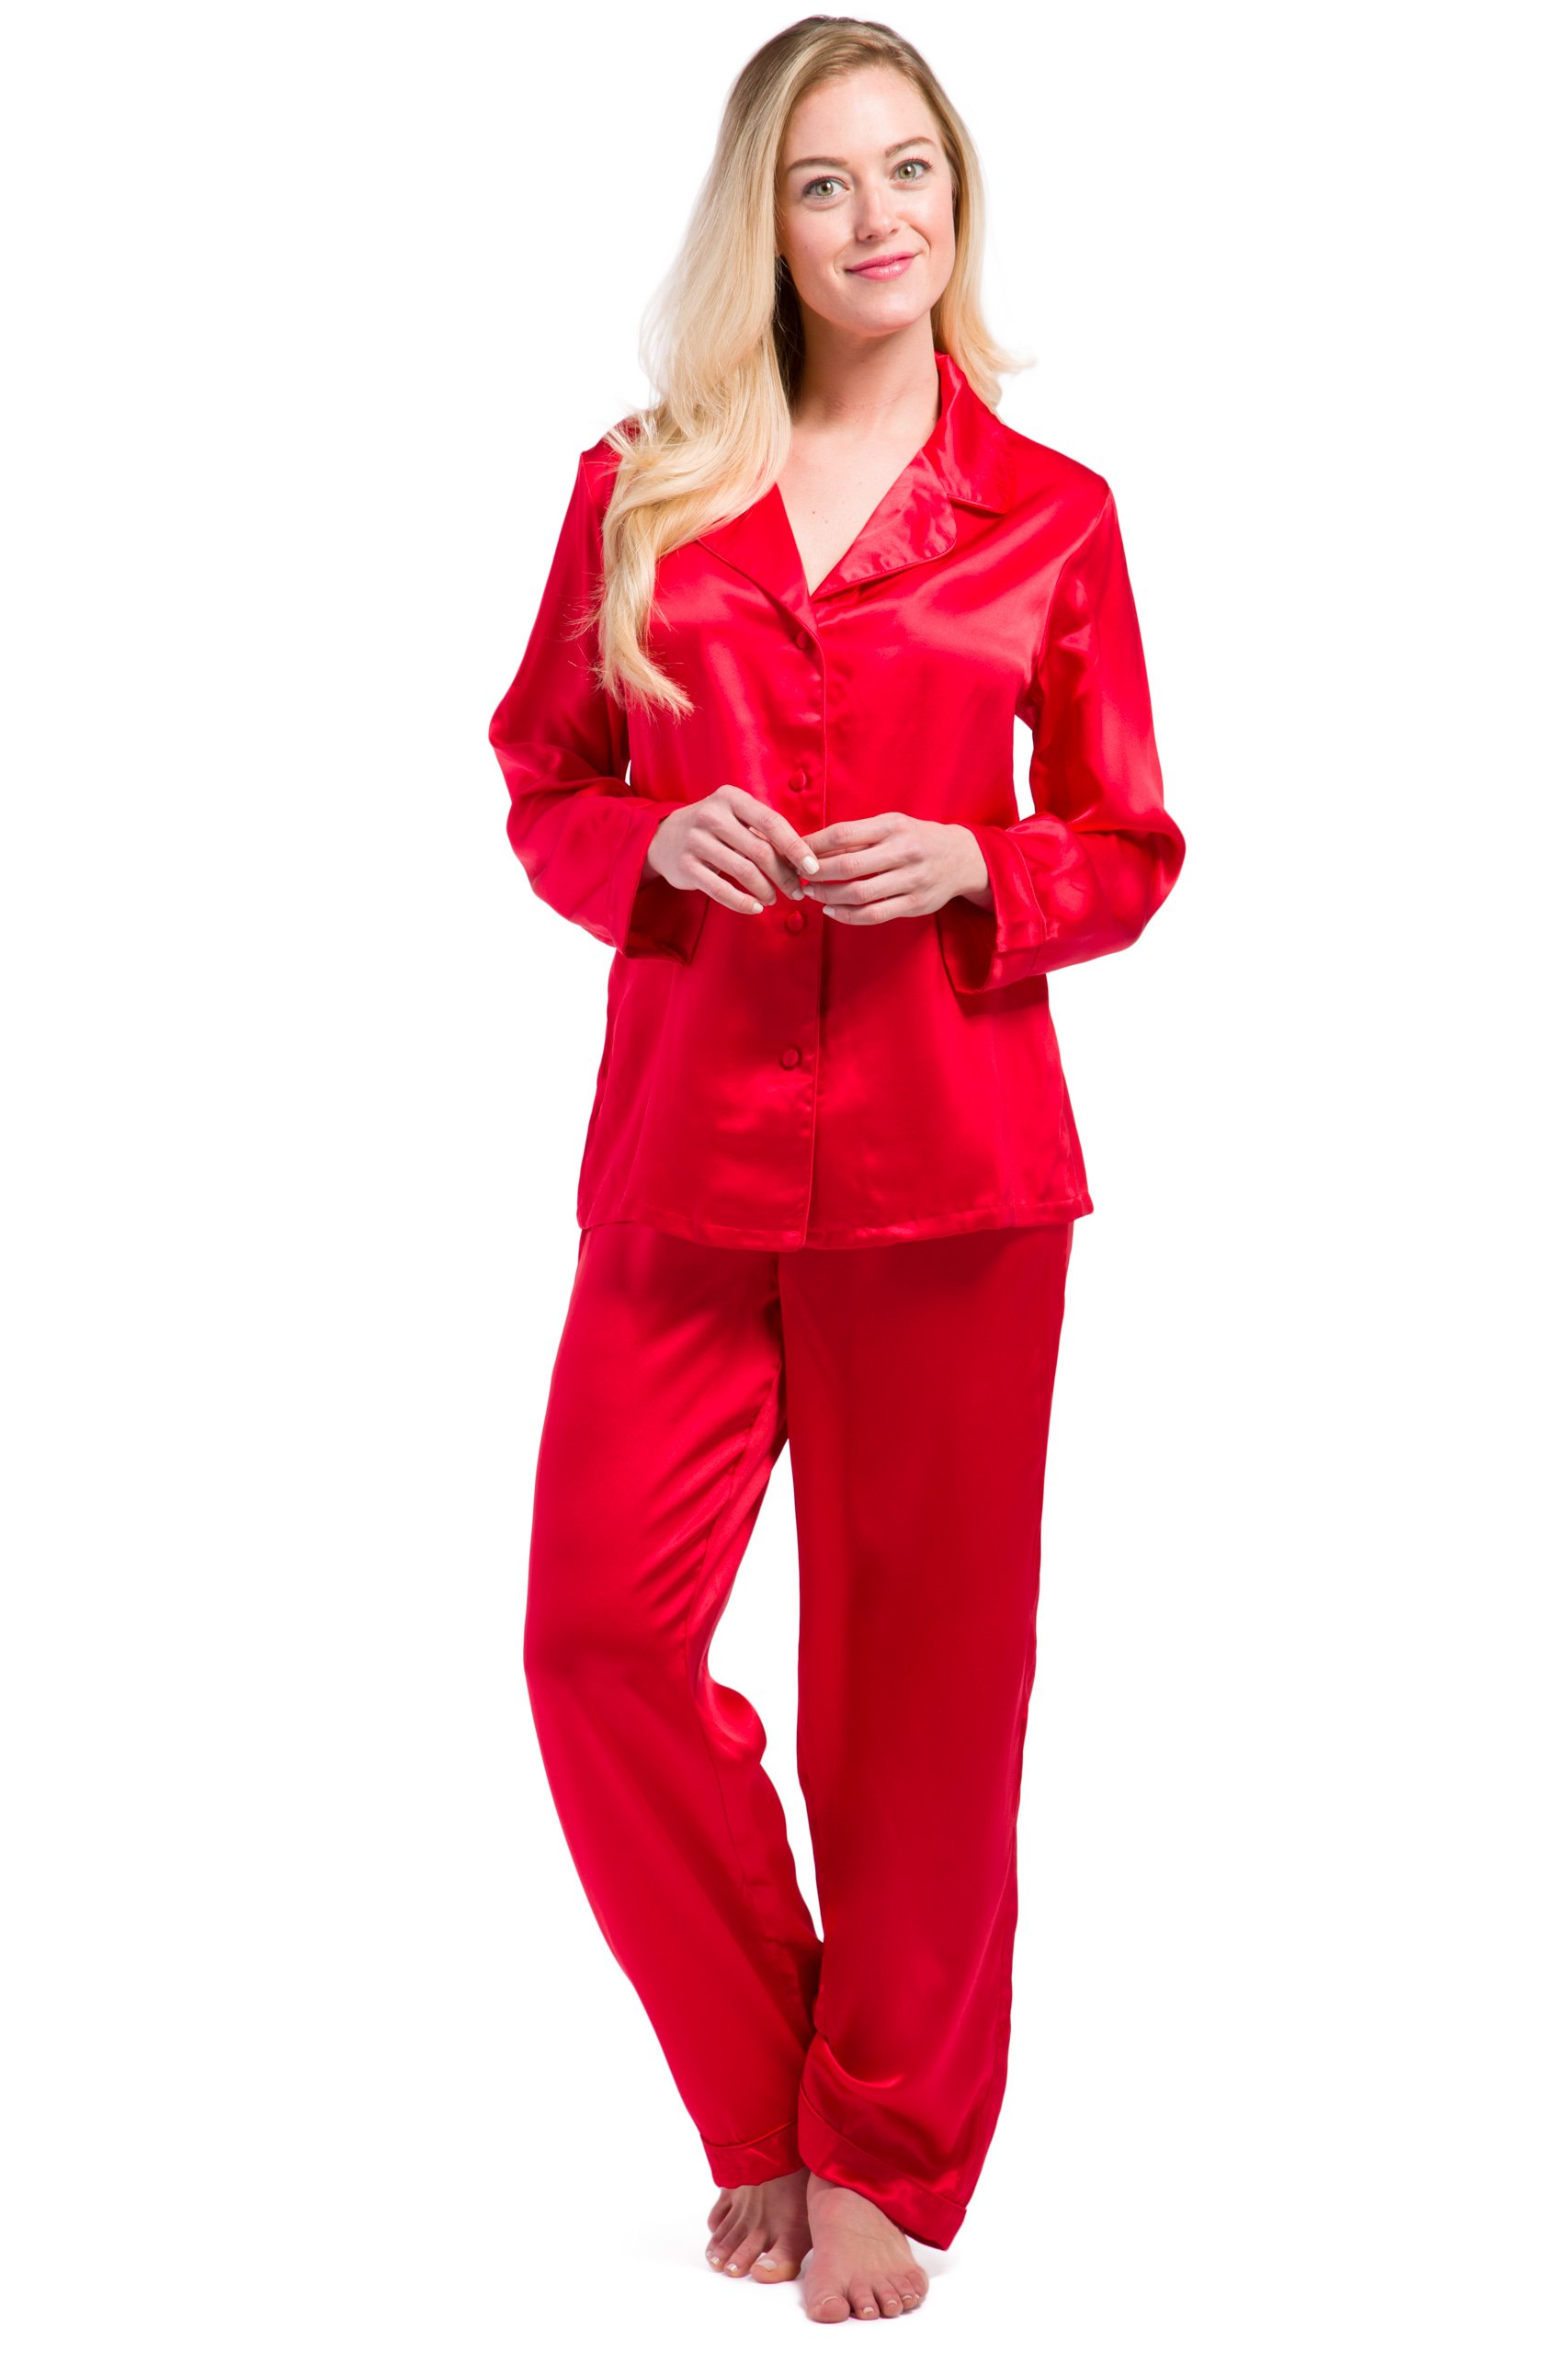 Fishers Finery Women's 100% Mulberry Silk Long Pajama Set; Gift Box (Red, S) by Fishers Finery